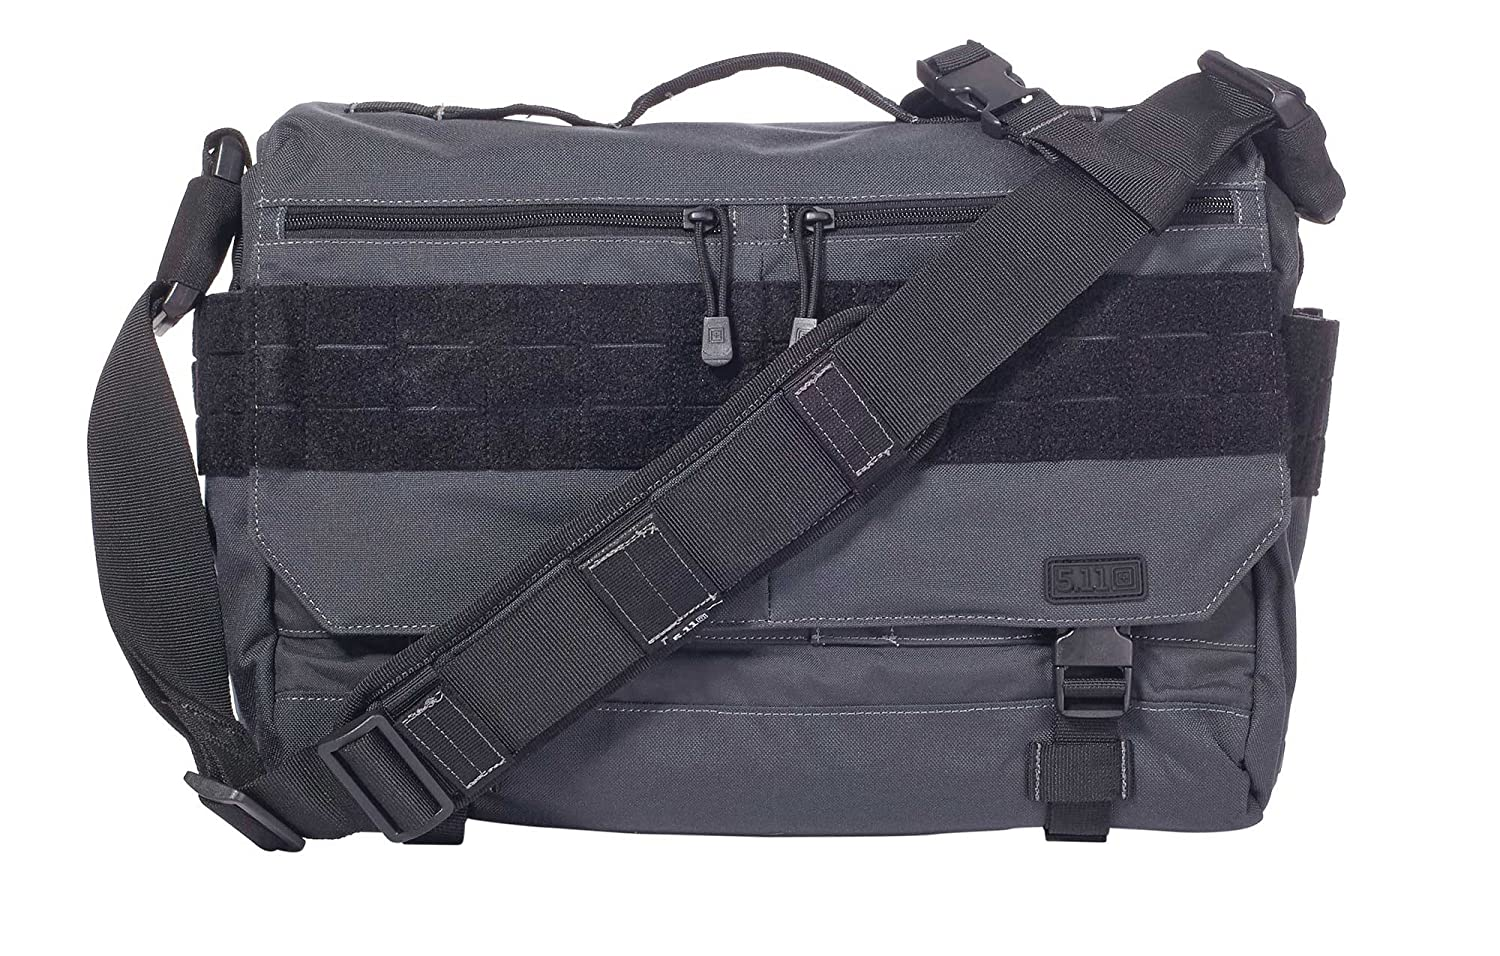 5.11 Tactical Series Rush Delivery Lima Messenger Style Bag, Double Tap 56177-026